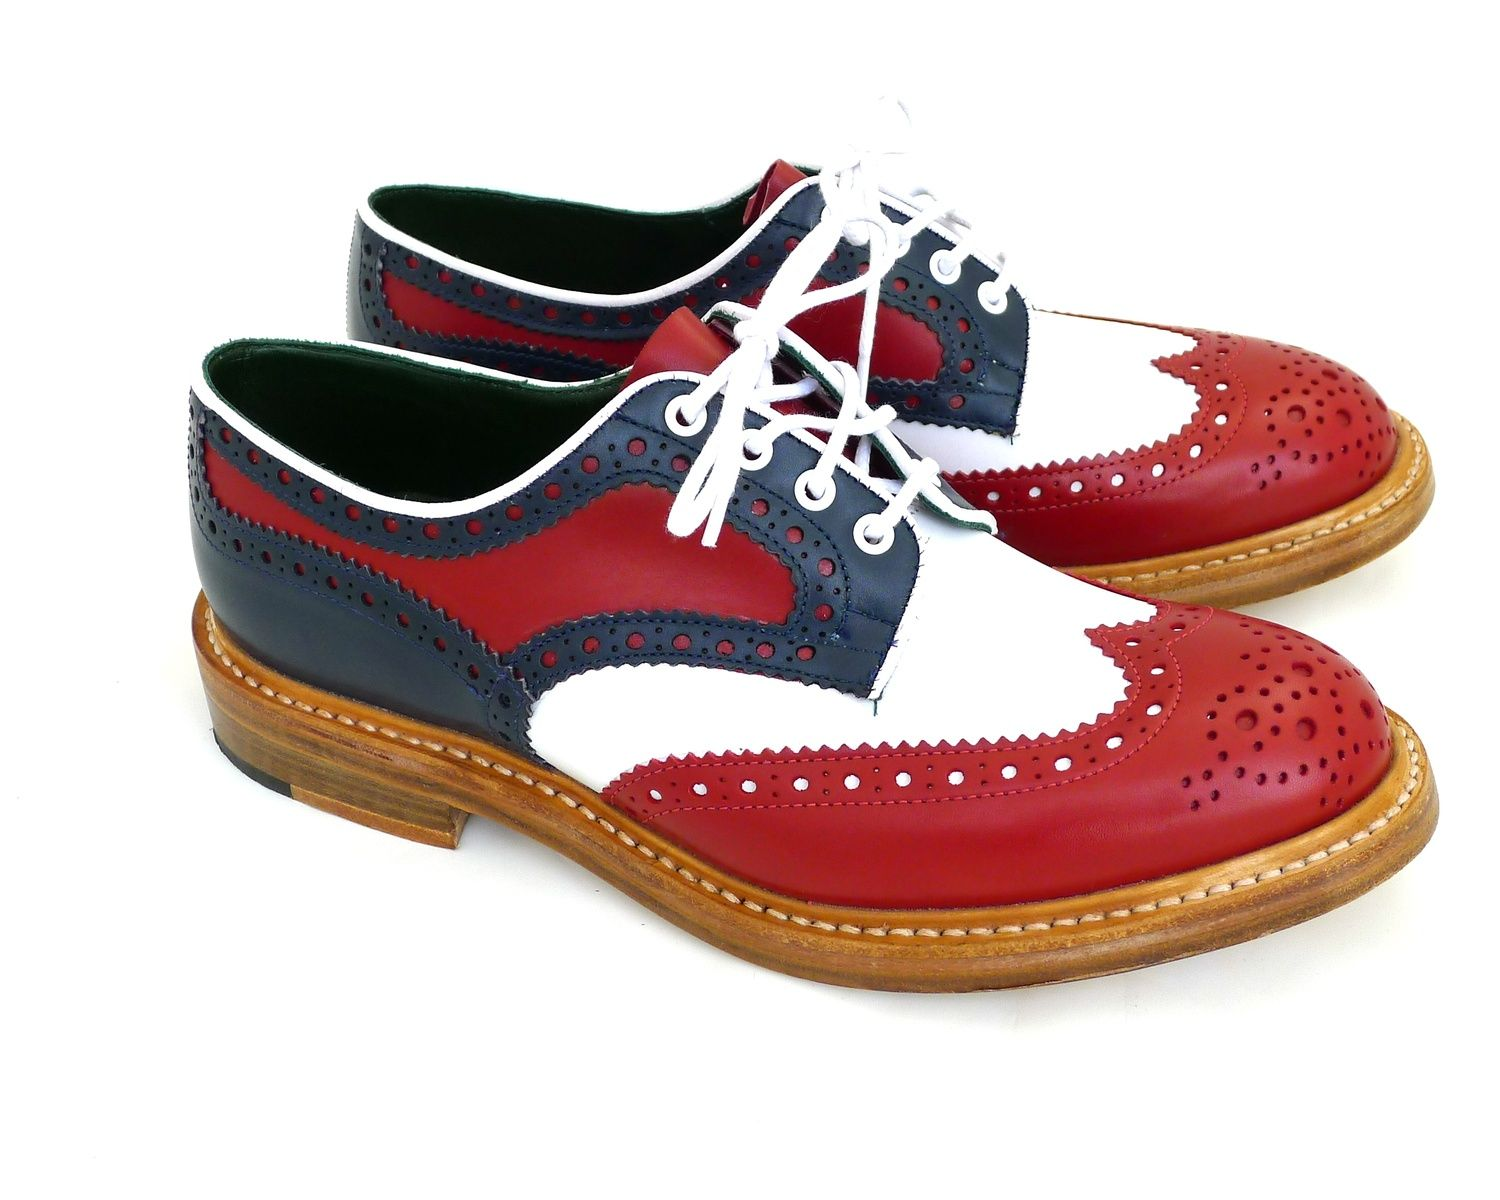 Men's Tricker's Multi-Color Derby Brogue Shoes with White Piping